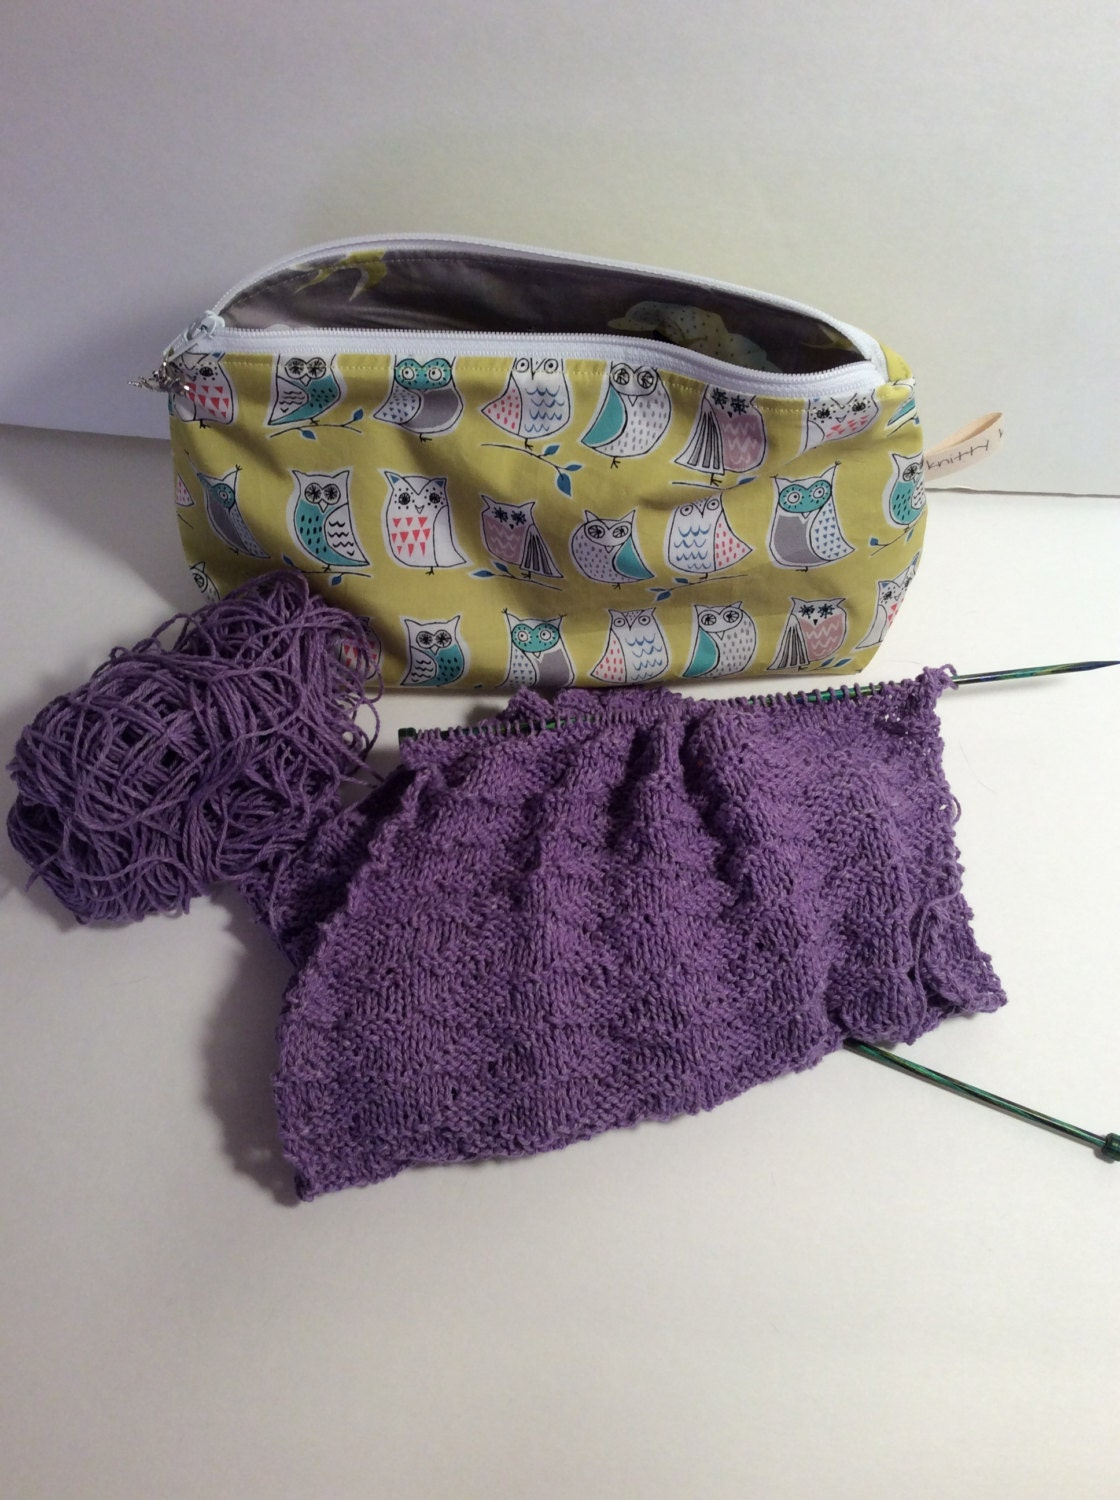 Zippered Knitting Bag : Zippered project bag knitting by